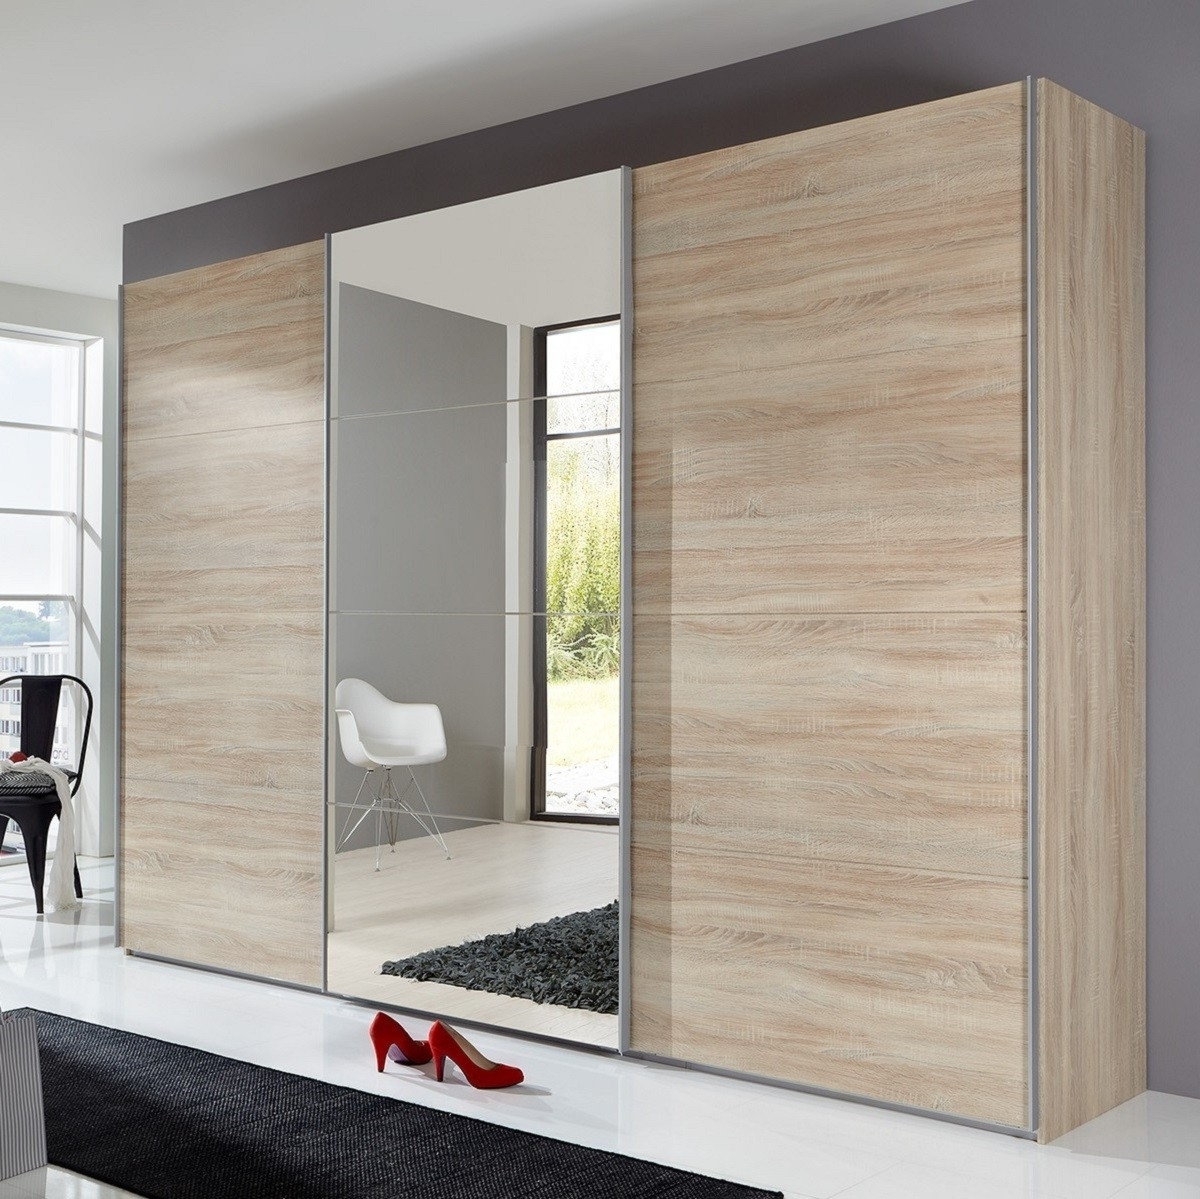 Three Door Wardrobes With Mirror In 2017 B8Fad6B5Ce3Ba4Ace851Eb70333Cf0Cb (View 6 of 15)